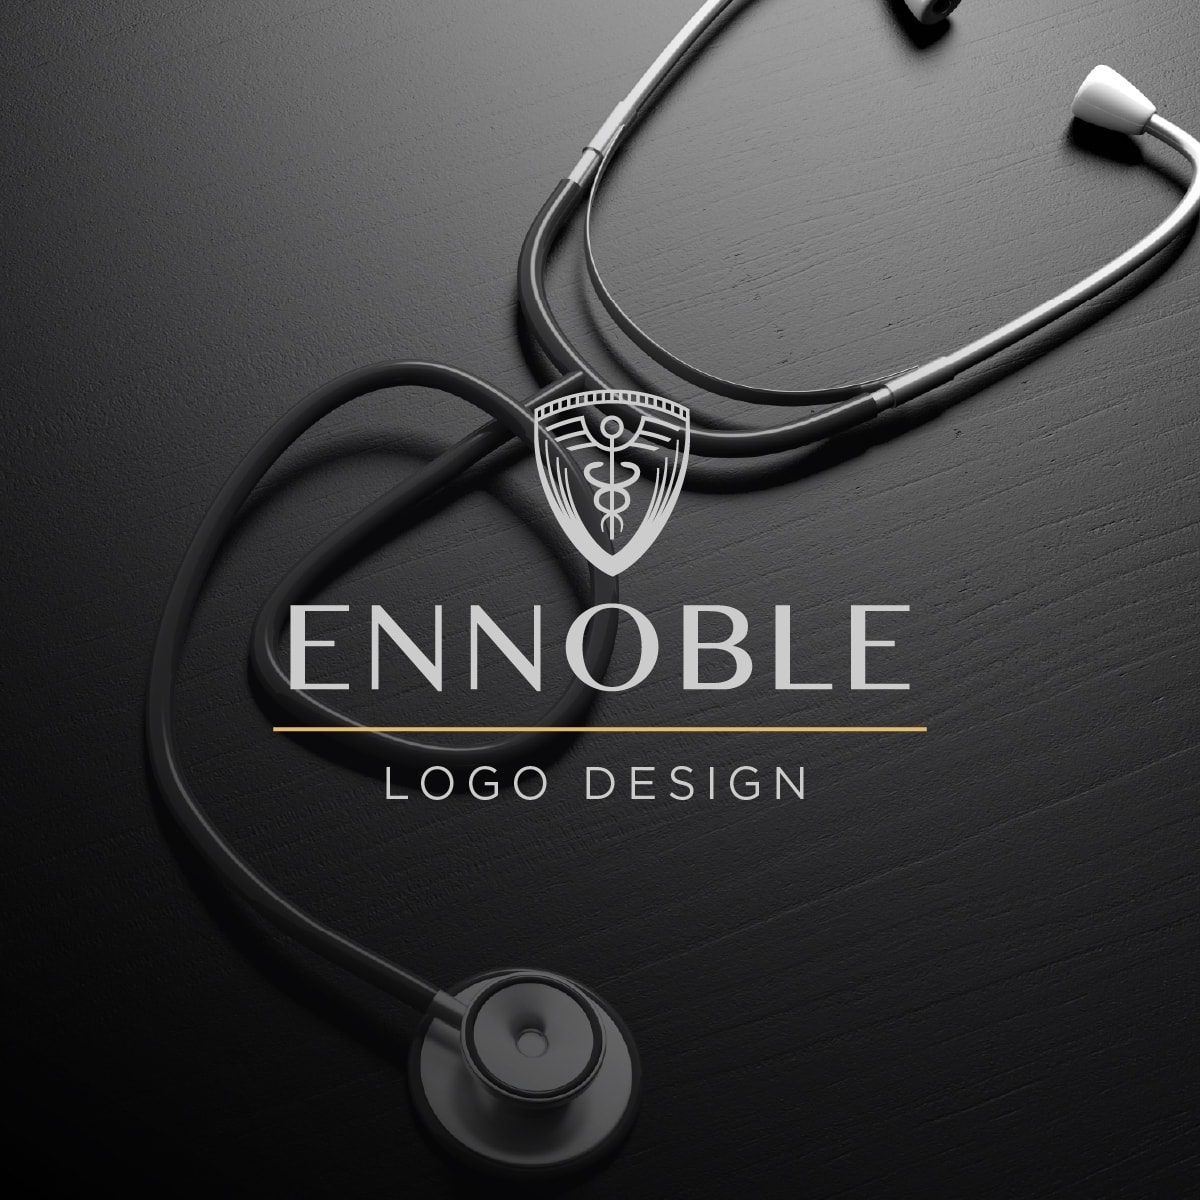 Ennoble logo design